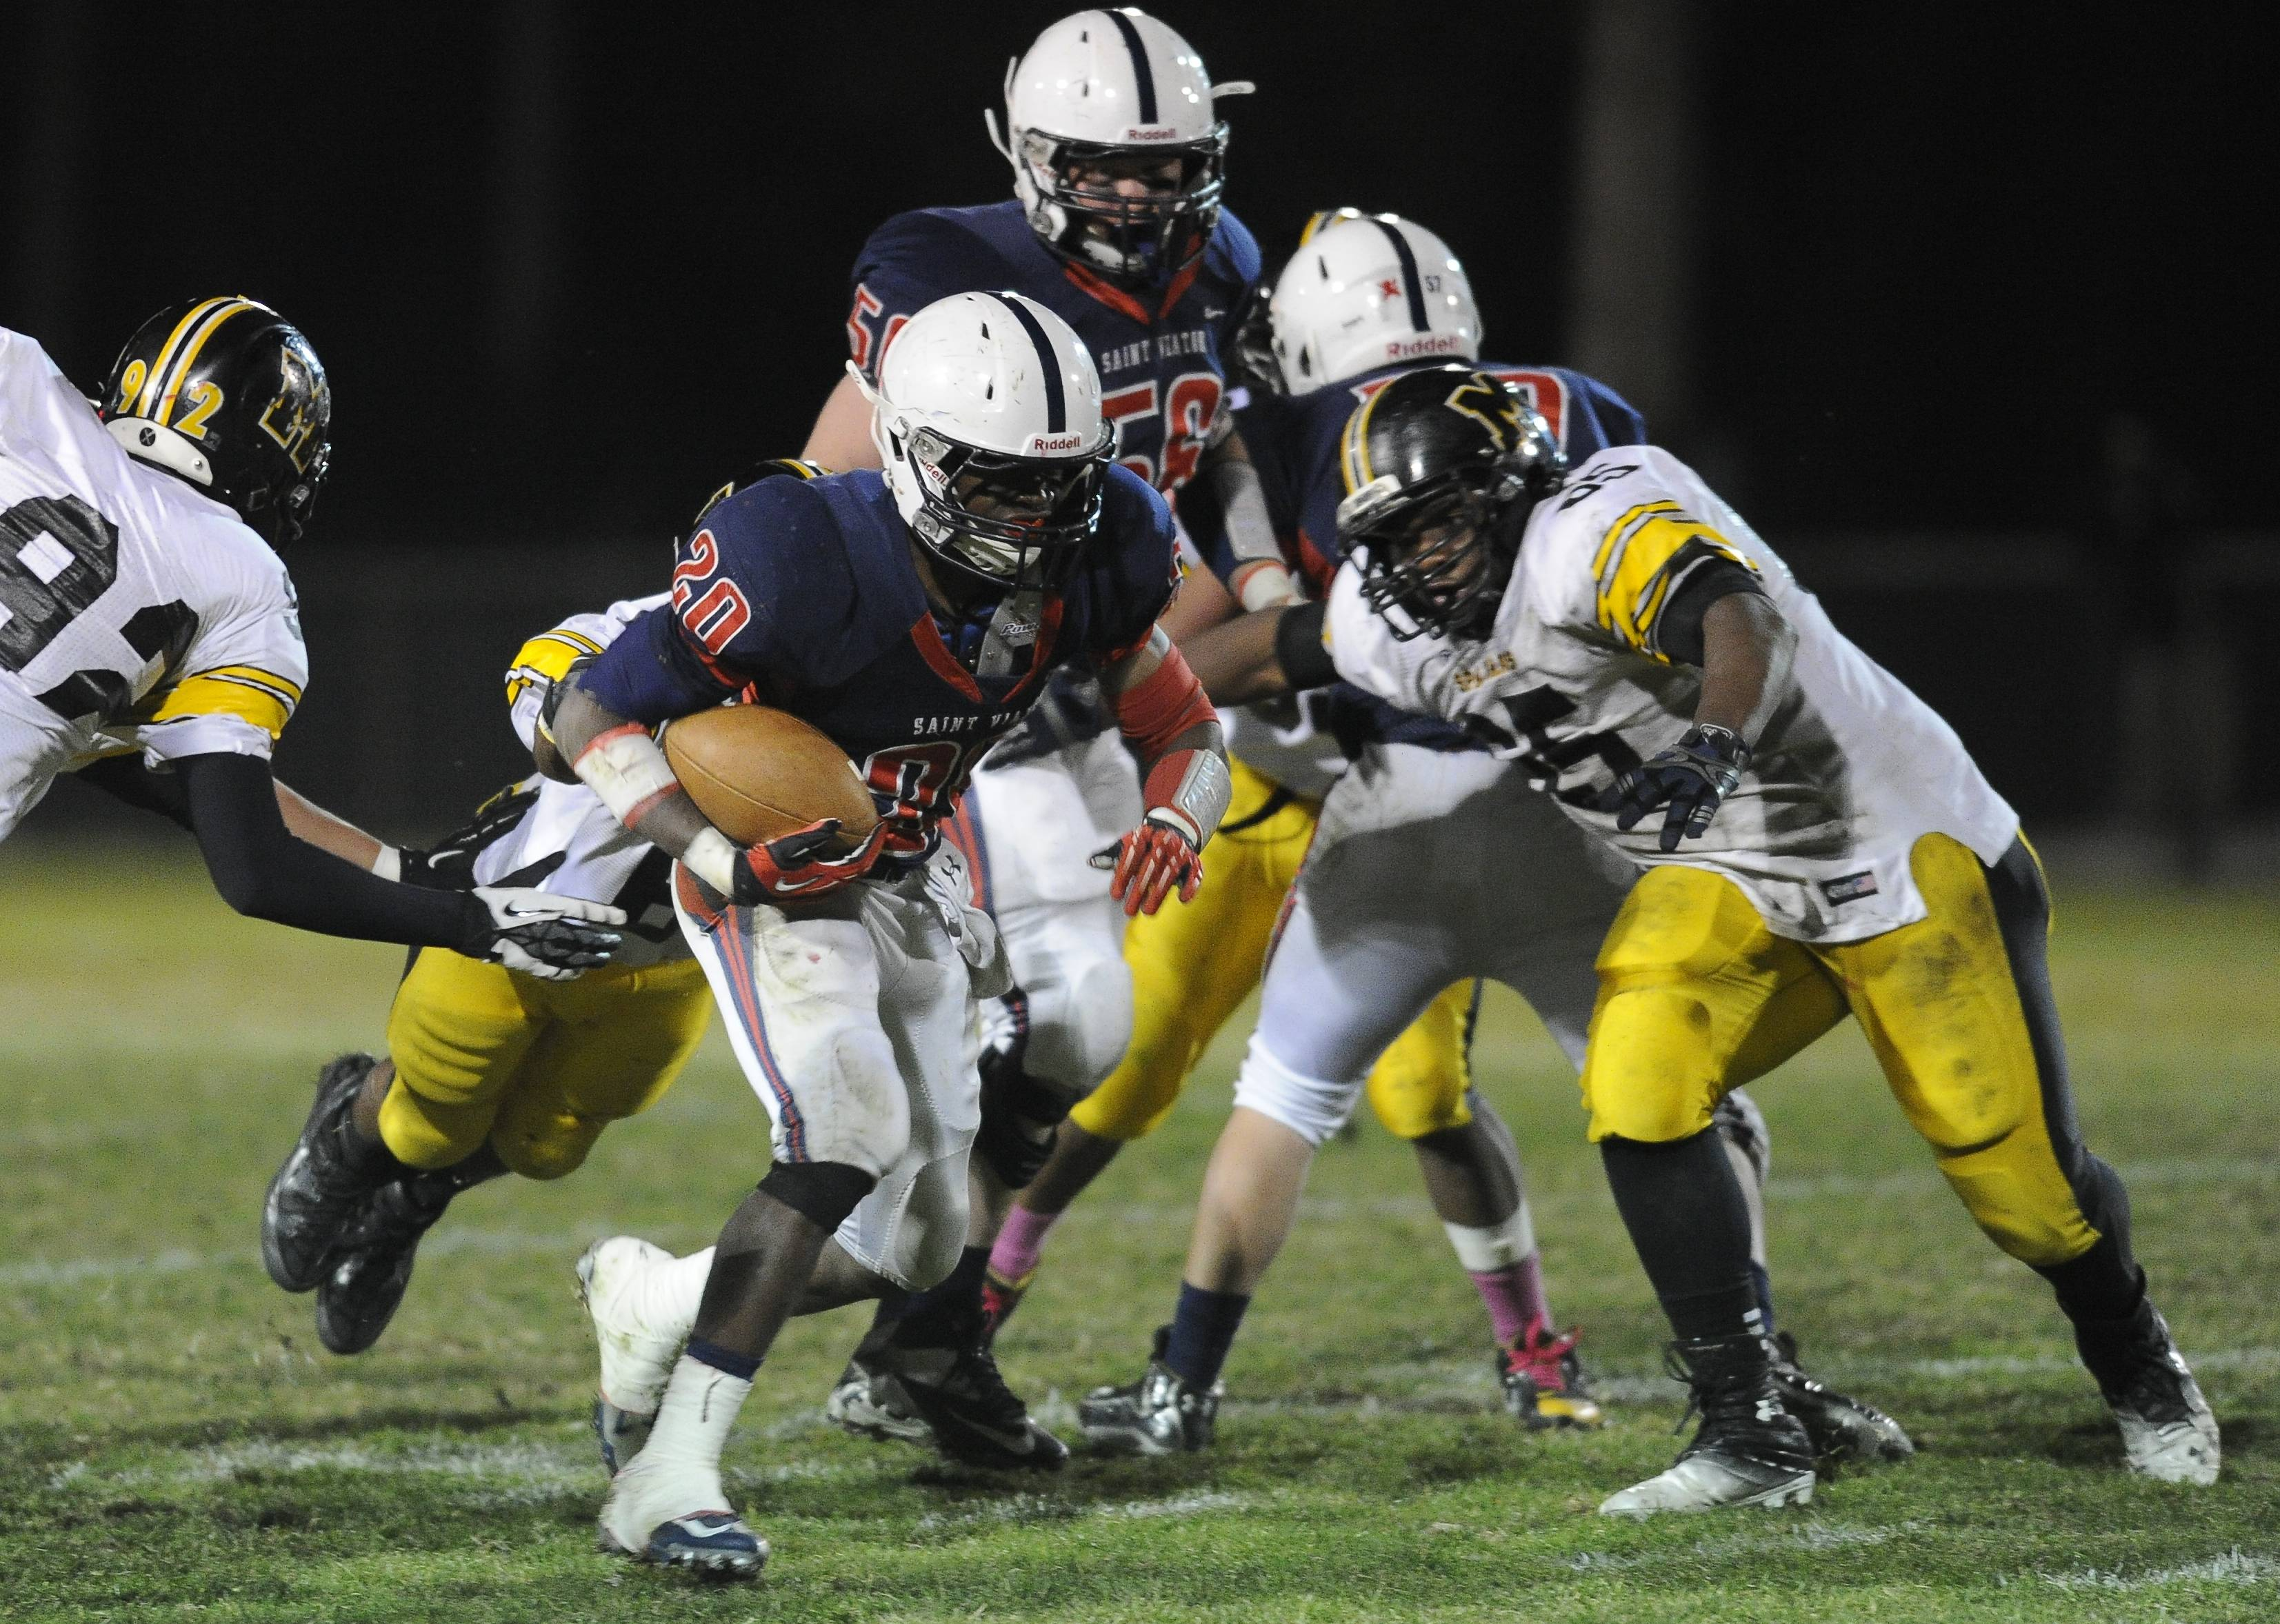 St. Viator beat Marian Catholic in Friday night football action in Arlington Heights.